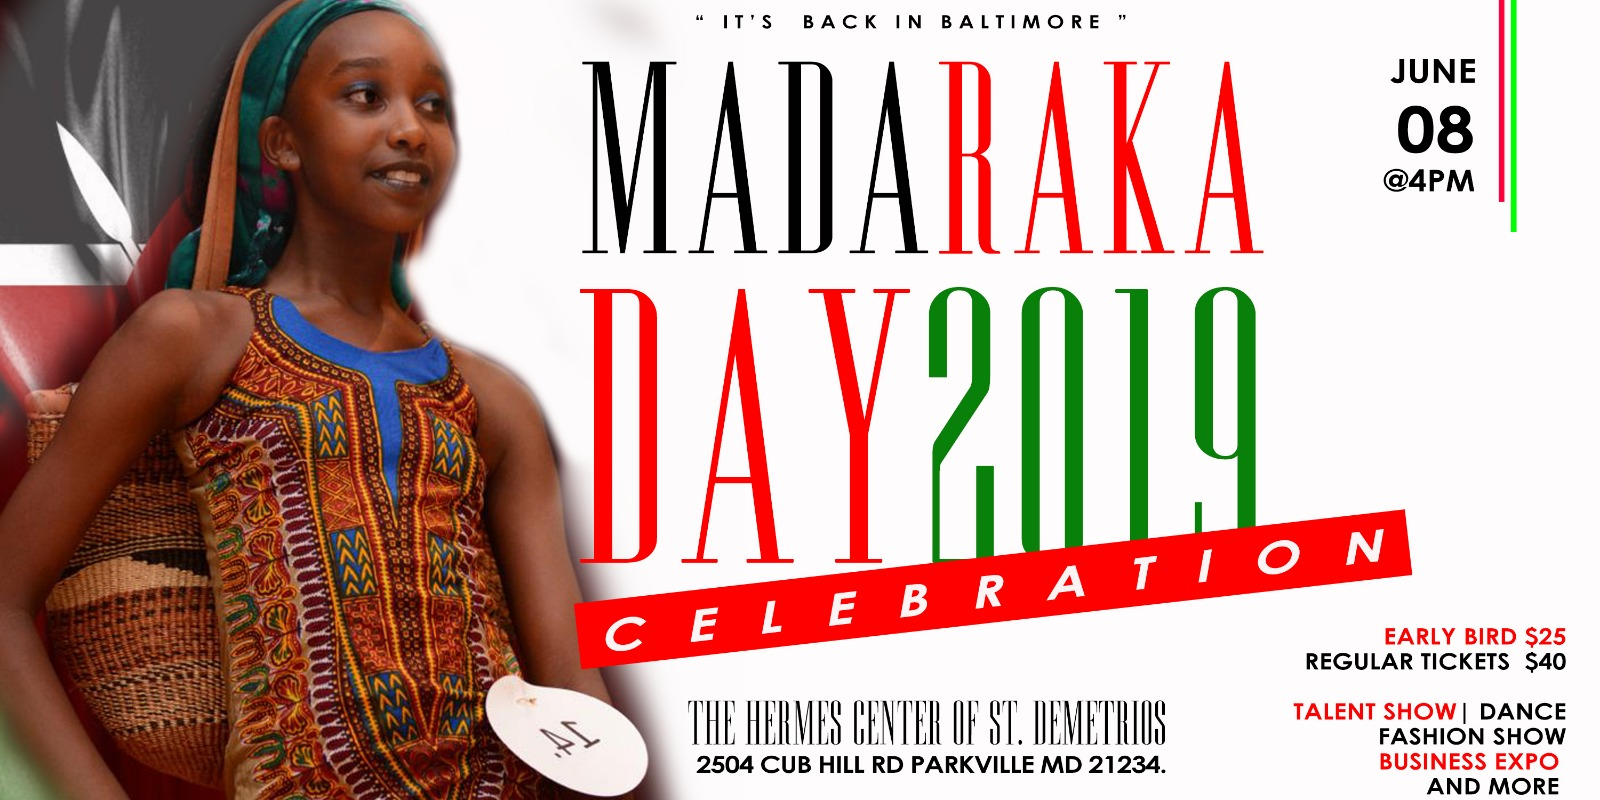 Madaraka Day Baltimore June 8th 2019